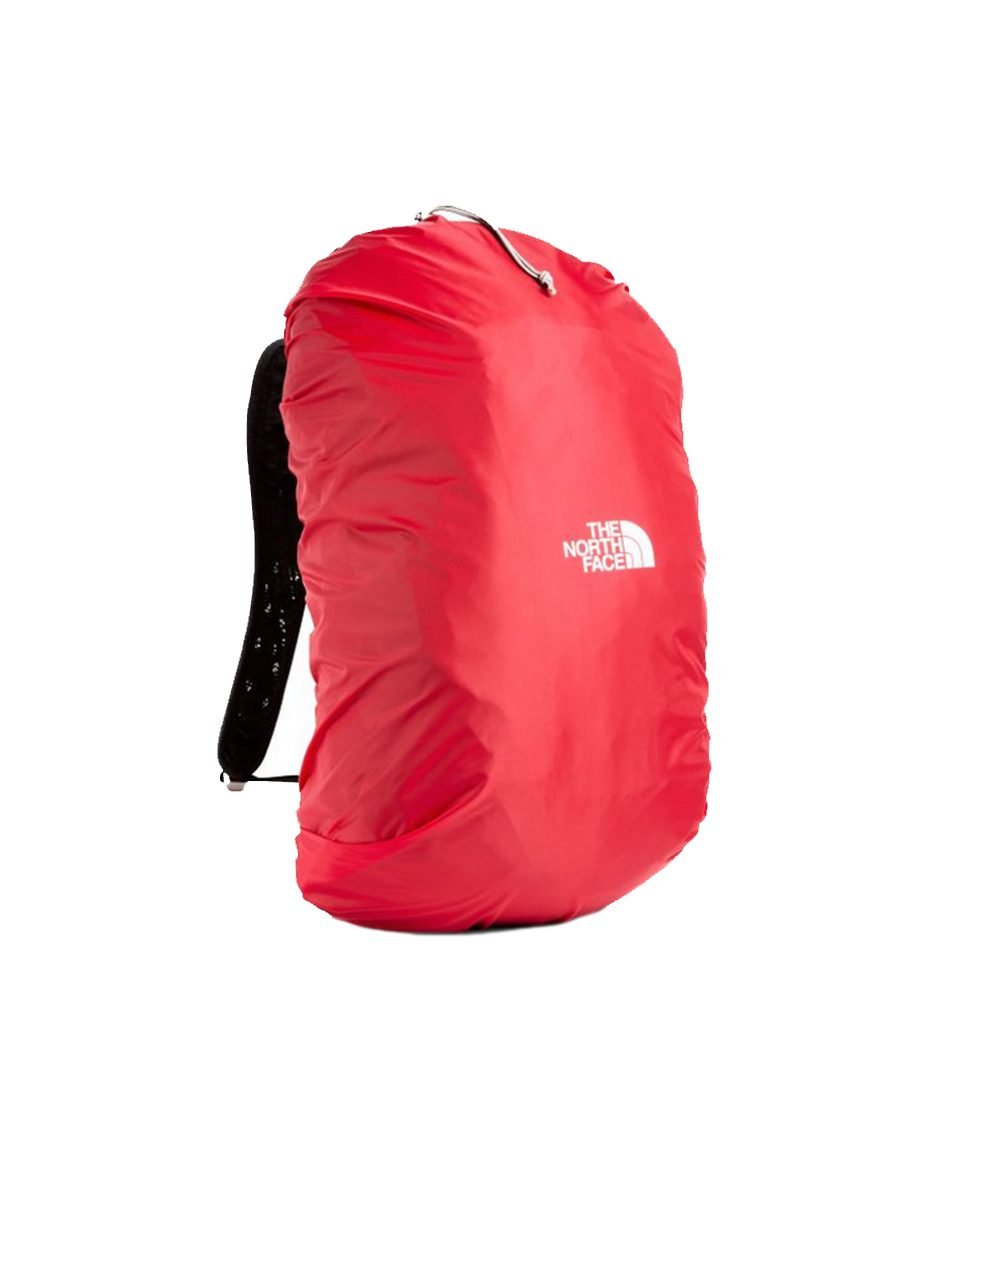 The North Face Pack Rain Cover  (T0CA7Z682) Red